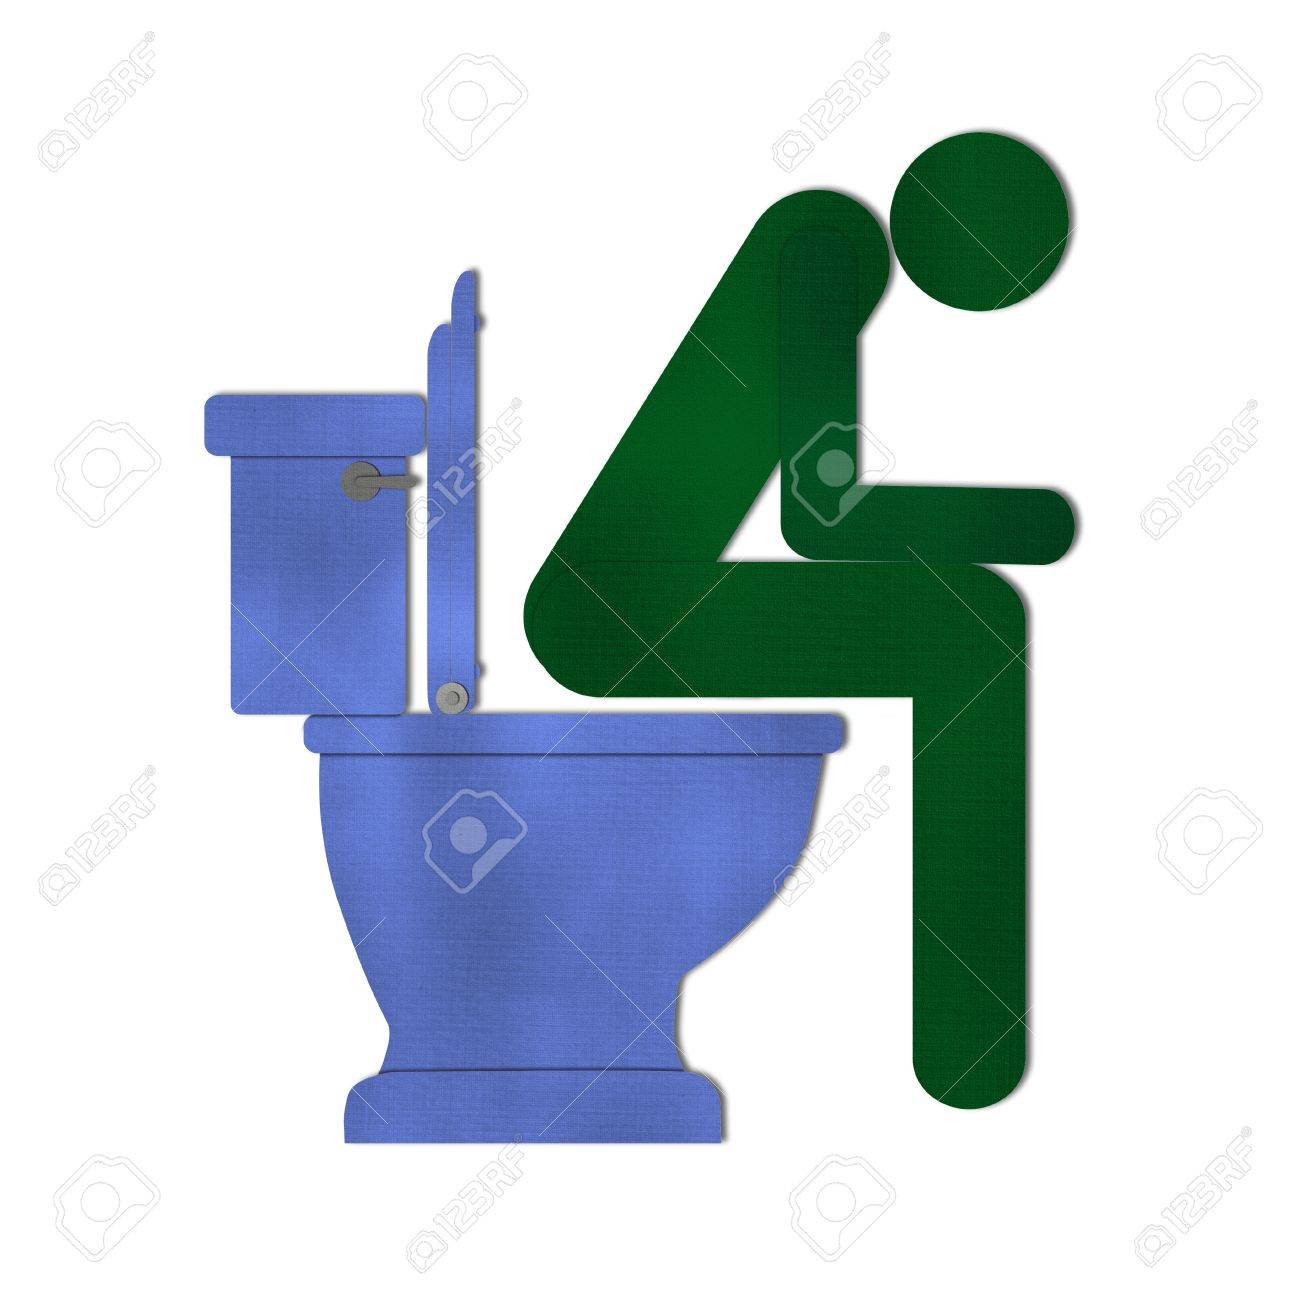 Man on toilet symbol from recycle paper stock photo picture and man on toilet symbol from recycle paper stock photo 15115281 buycottarizona